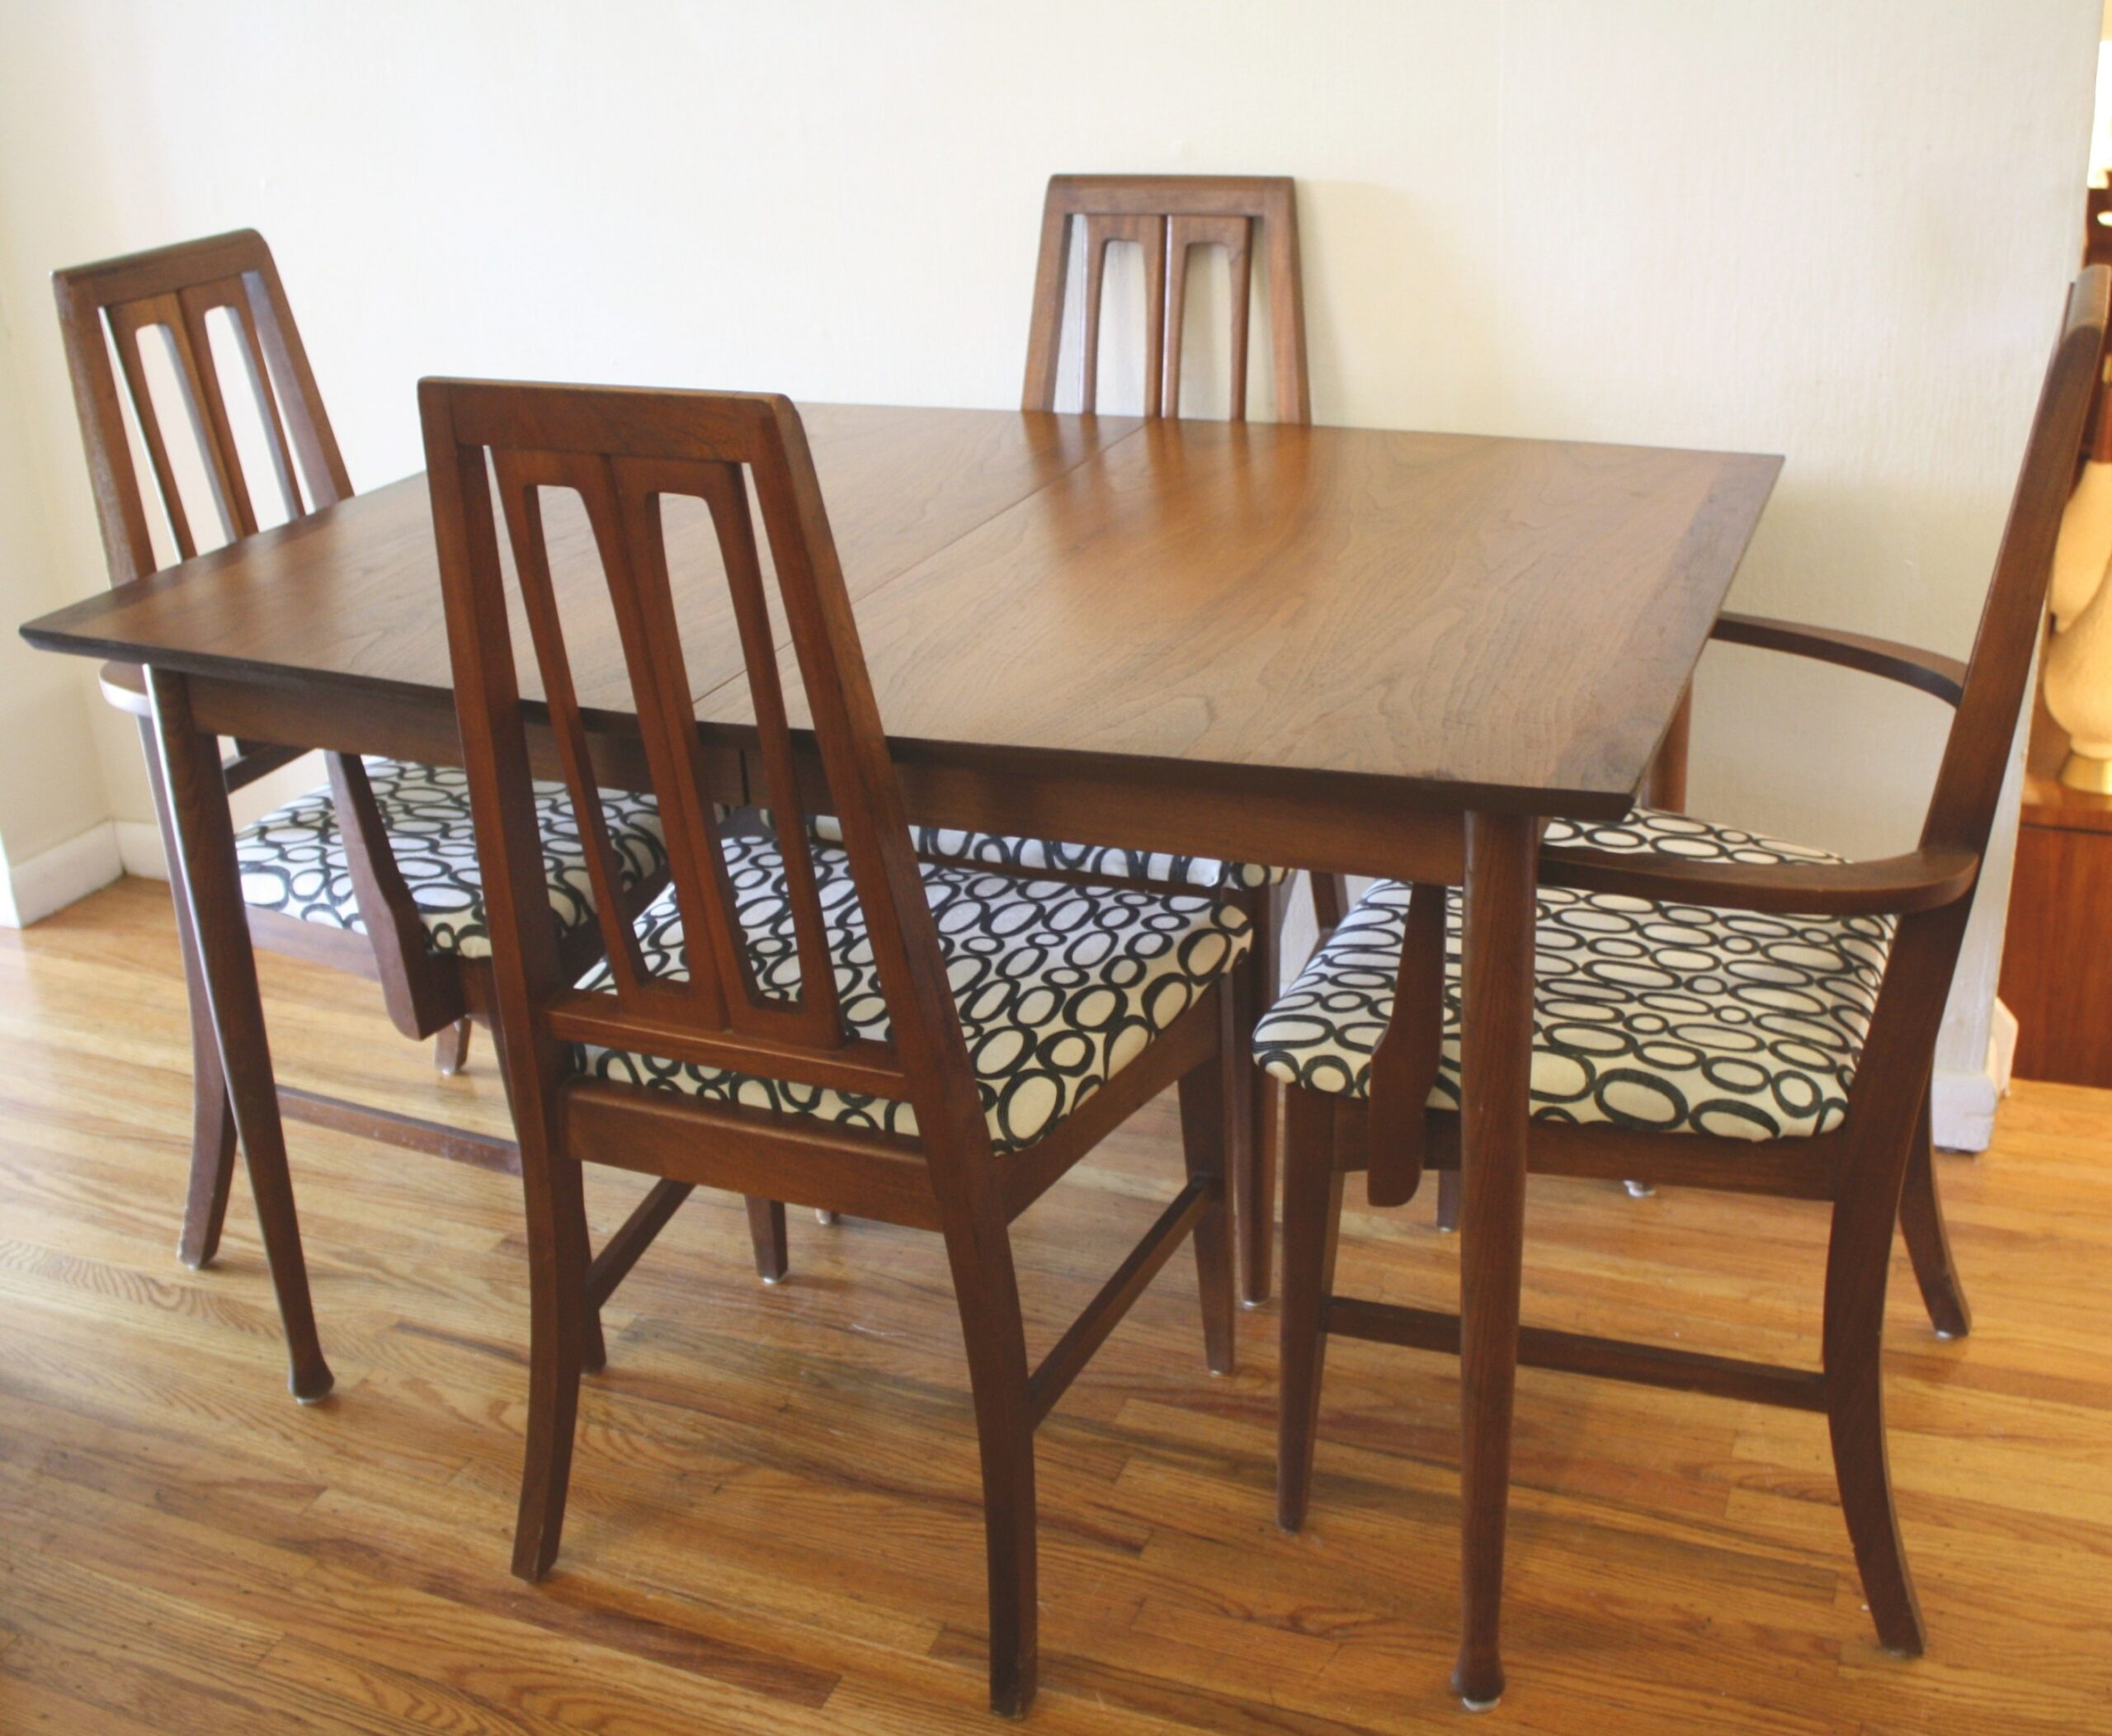 Mid Century Modern Sets Of Dining Chairs | Picked Vintage with regard to Mid Century Modern Dining Set